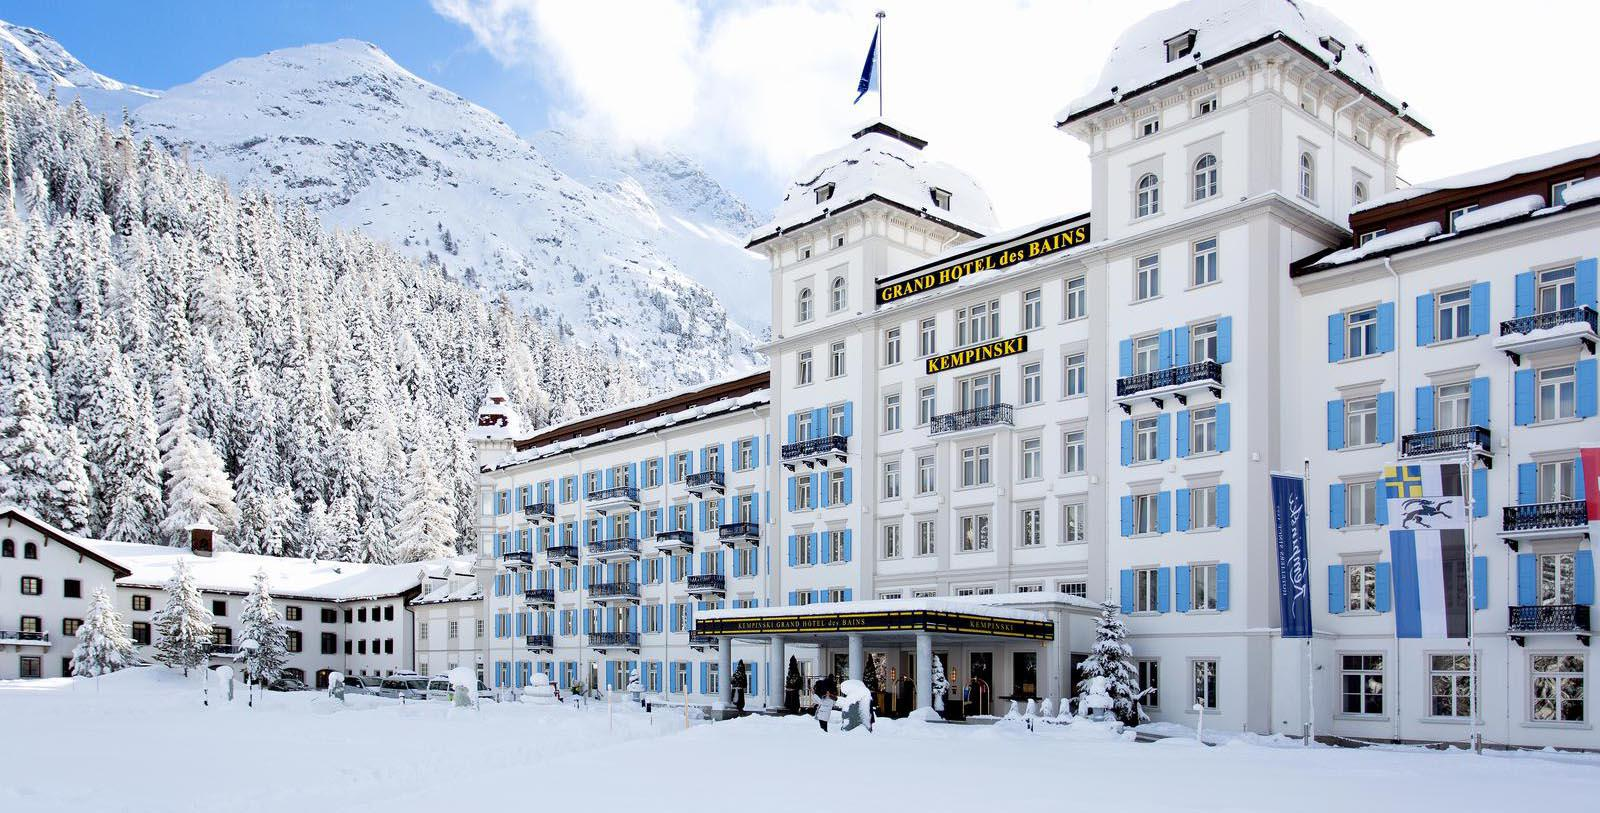 Image of Hotel Exterior Kempinski Grand Hotel des Bains St. Moritz, 1864, Member of Historic Hotels Worldwide, in St. Moritz, Switzerland, Special Offers, Discounted Rates, Families, Romantic Escape, Honeymoons, Anniversaries, Reunions